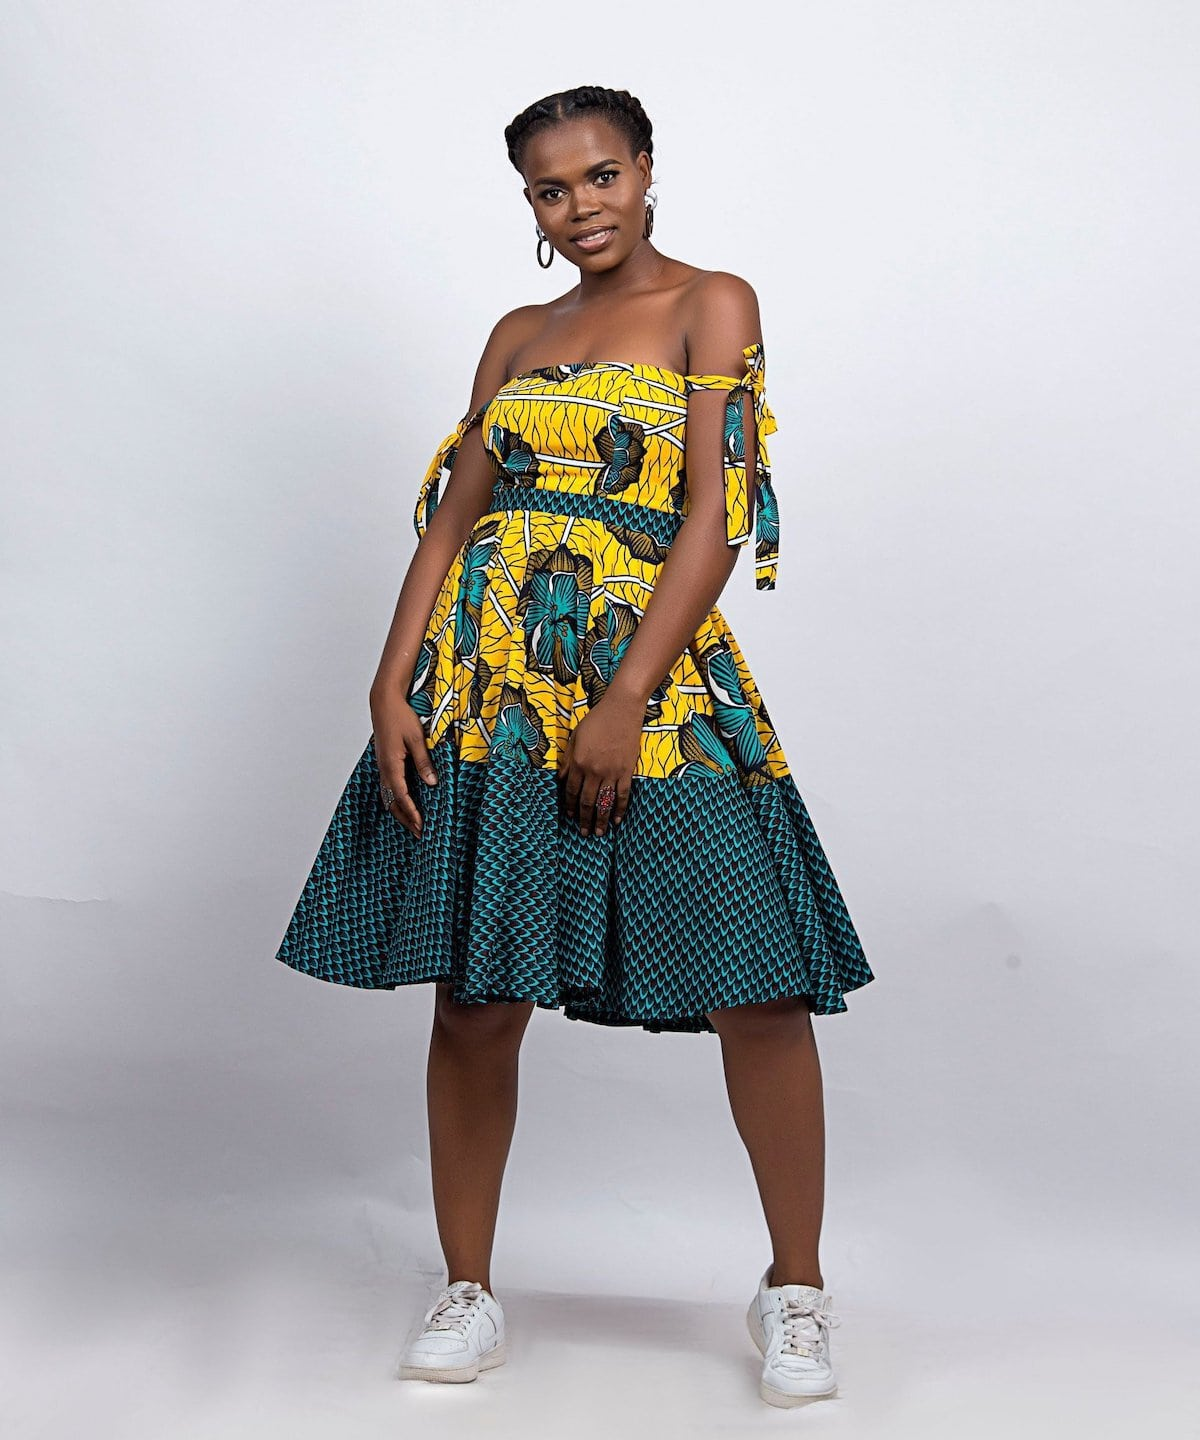 Who would have thought that African print clothes would look this good? Check out this stunning ankara print dress from Boriah Clothiers. From ankara Dutch wax, Kente, to Kitenge and Dashiki. All your favorite styles in one place (+find out where to get them). Click to see all! Ankara, Dutch wax, Kente, Kitenge, Dashiki, African print dress, African fashion, African women dresses, African prints, Nigerian style, Ghanaian fashion, Senegal fashion, Kenya fashion, Nigerian fashion #africanprint #ankarastyles #africanfashion